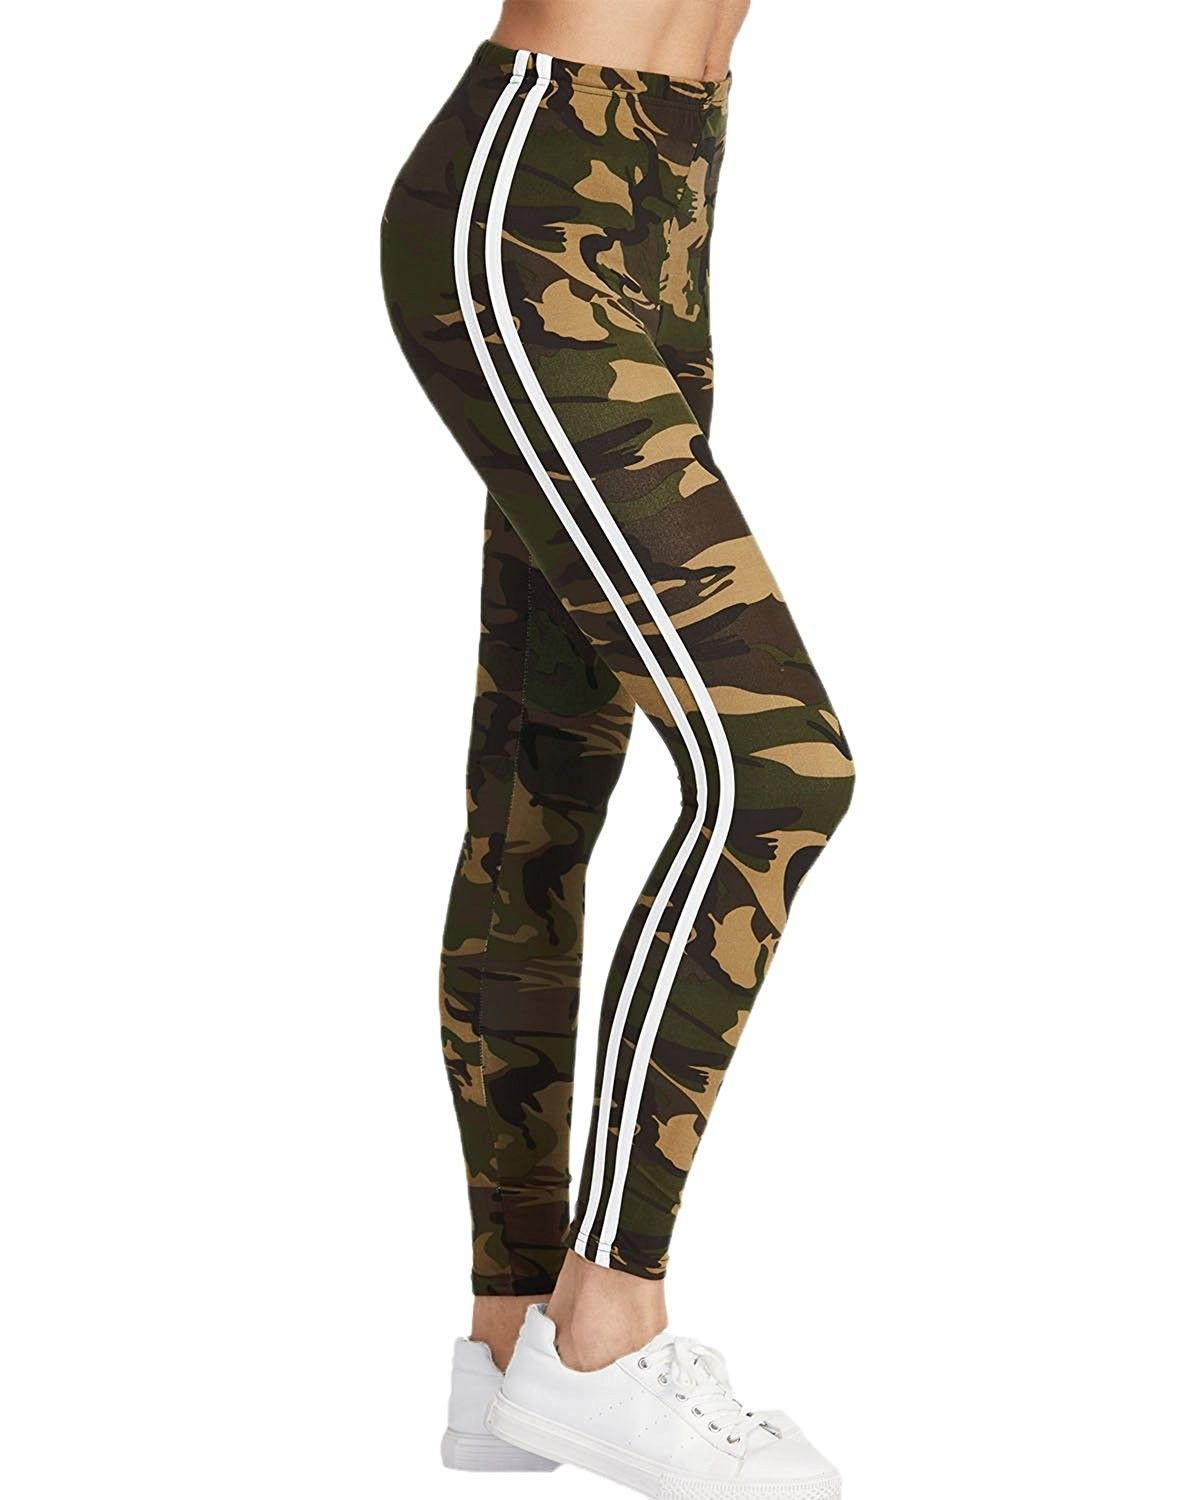 e023a421a8ac0 Women's Leggings Camouflage Fitness Slim Sport Pants Joggers Striped Side  Trousers Bottoms - Ecamouflage - C81873AWICH,Women's Clothing, Leggings # women ...